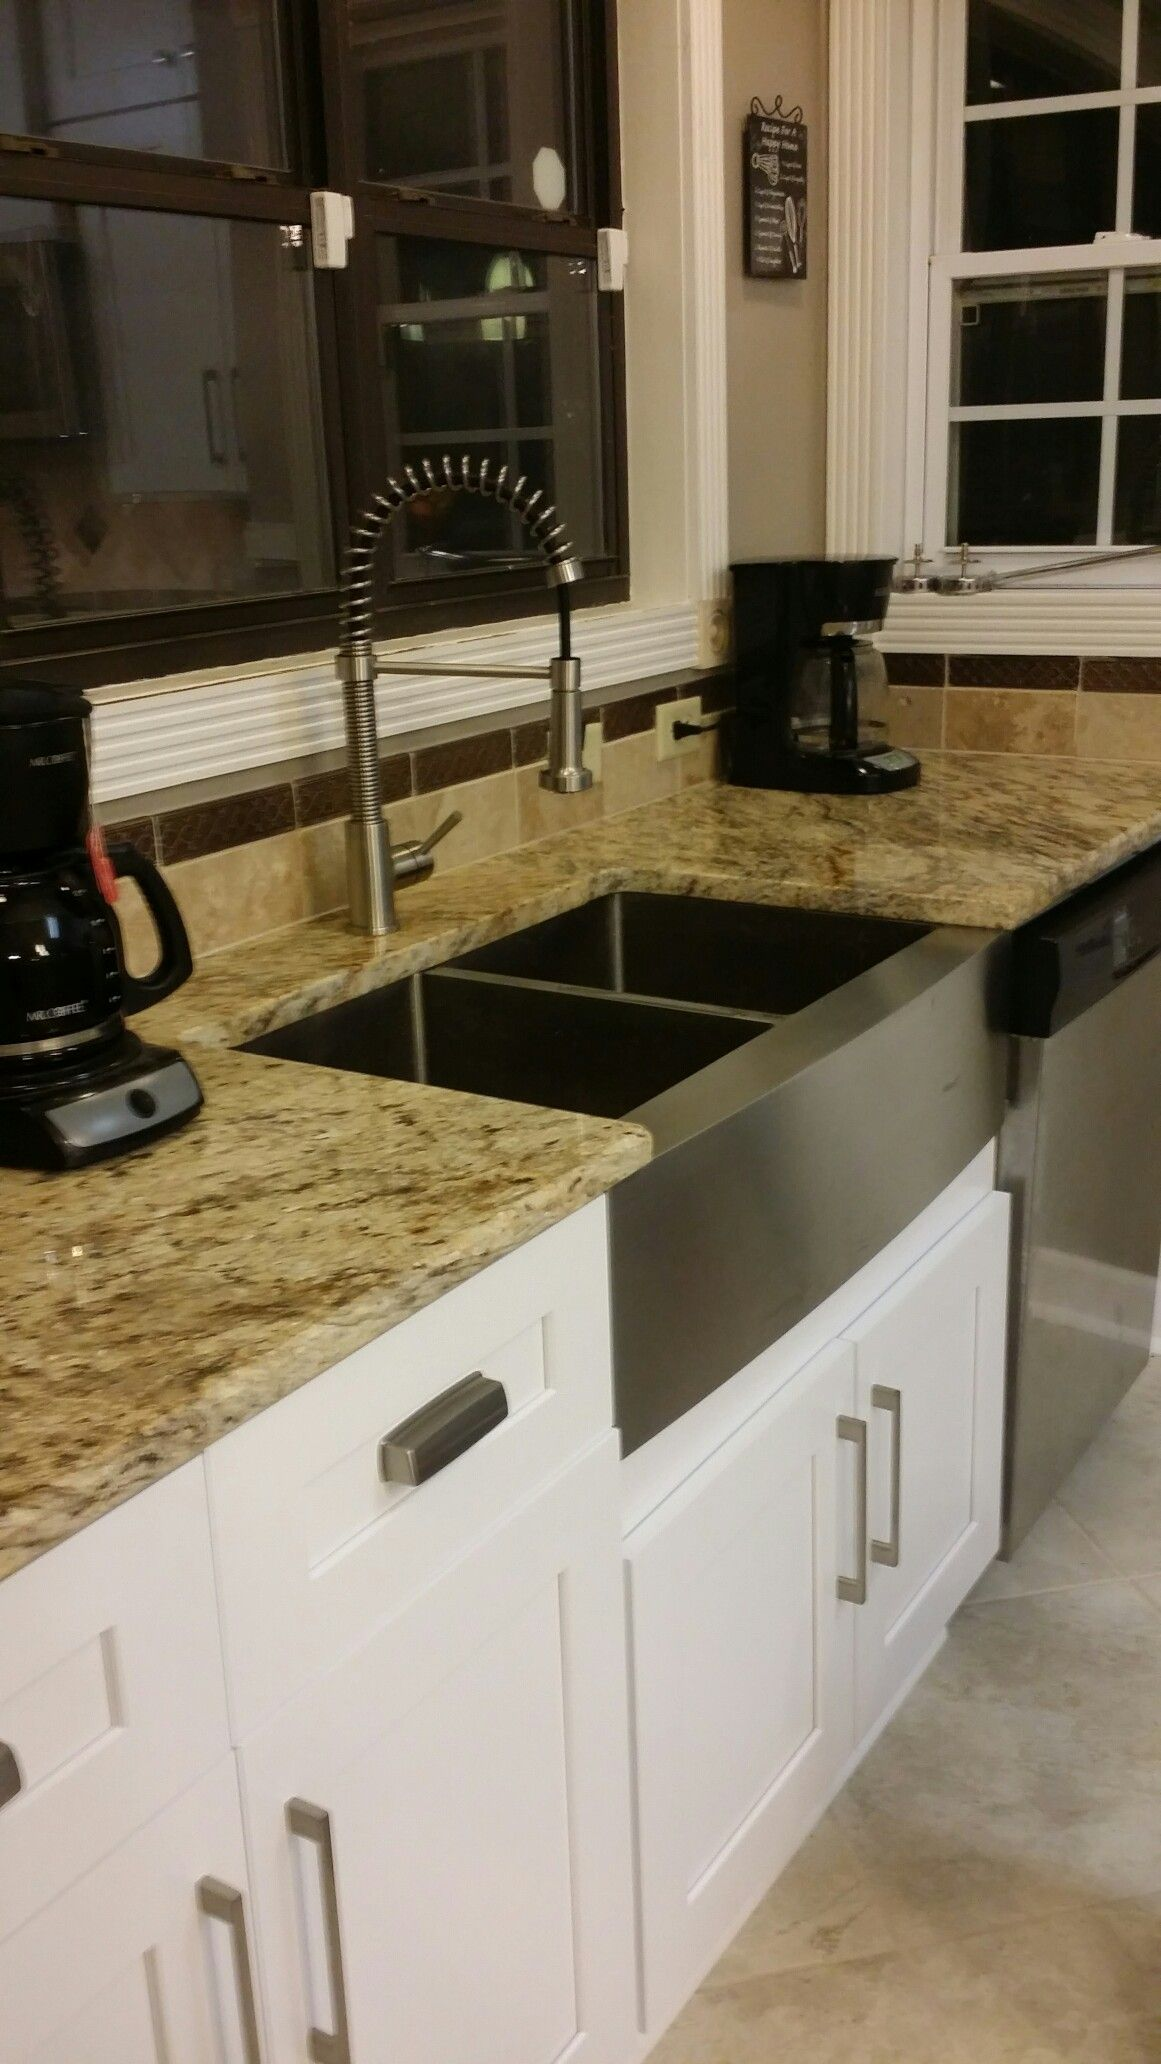 Travertine Tile Backsplash And Trim From Floors And Decor With Our